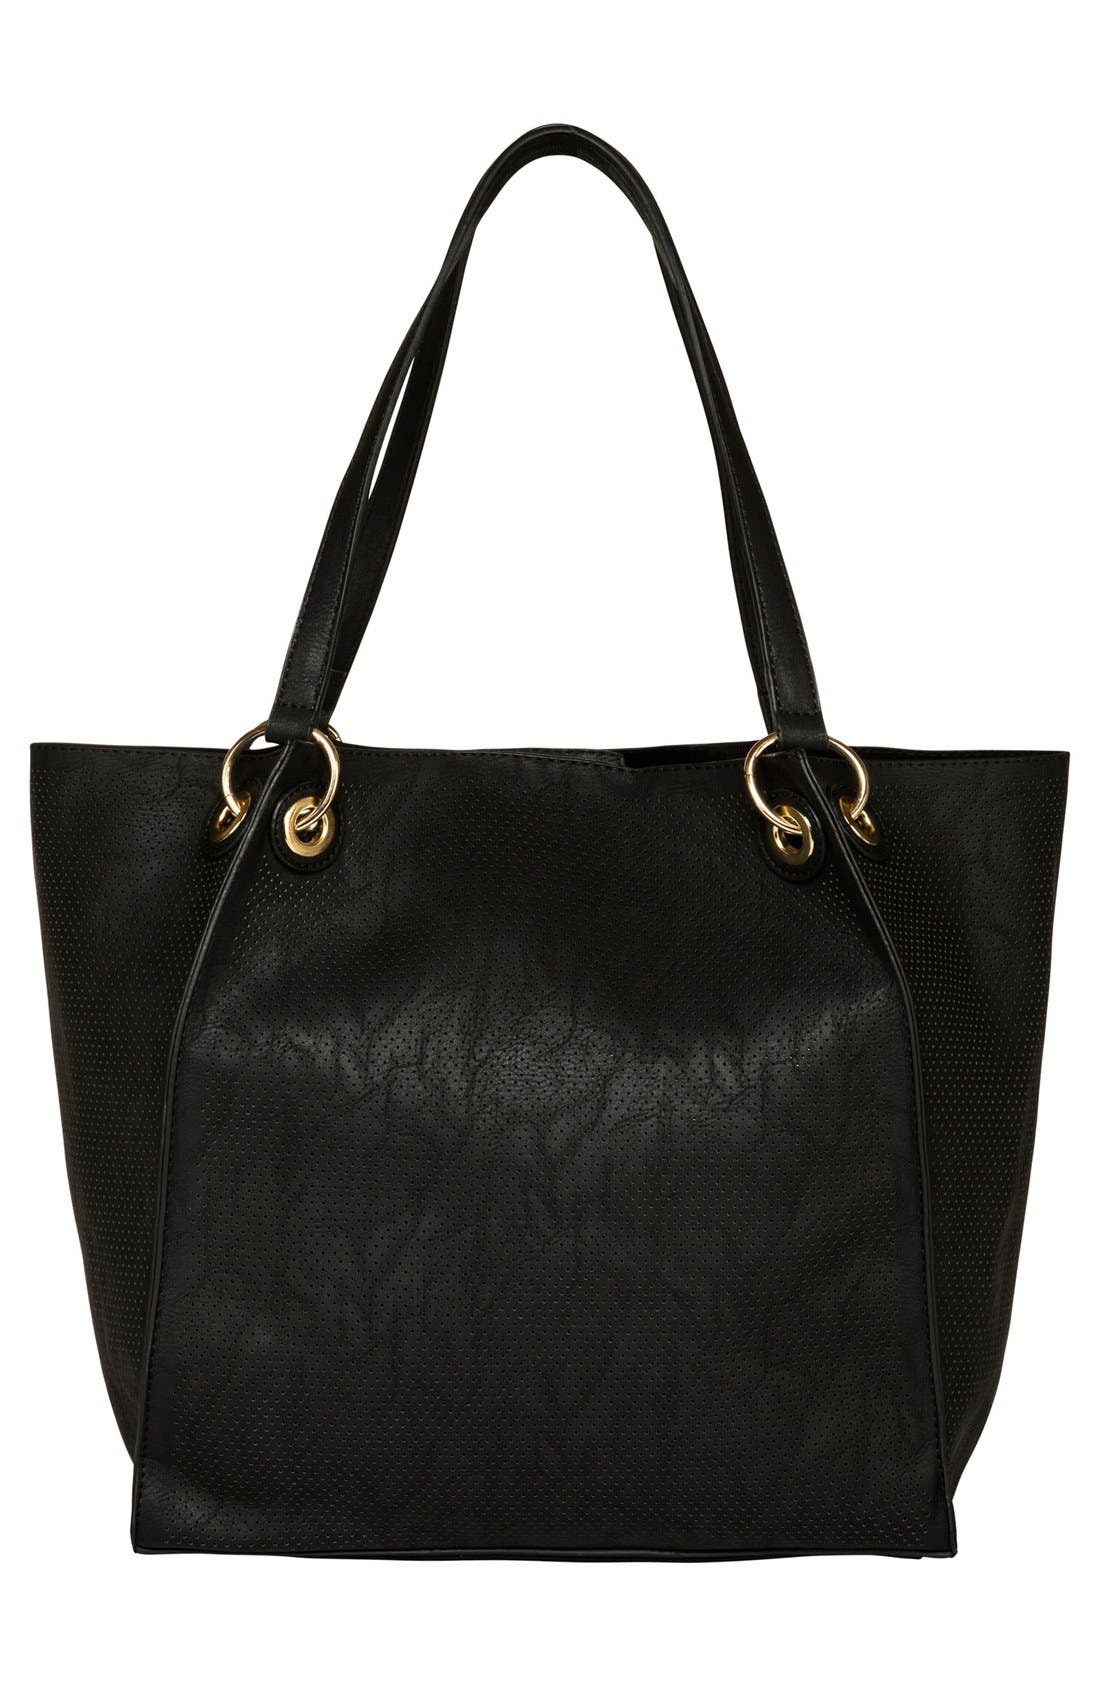 Urban Originals 'Wonder' Perforated Vegan Leather Tote